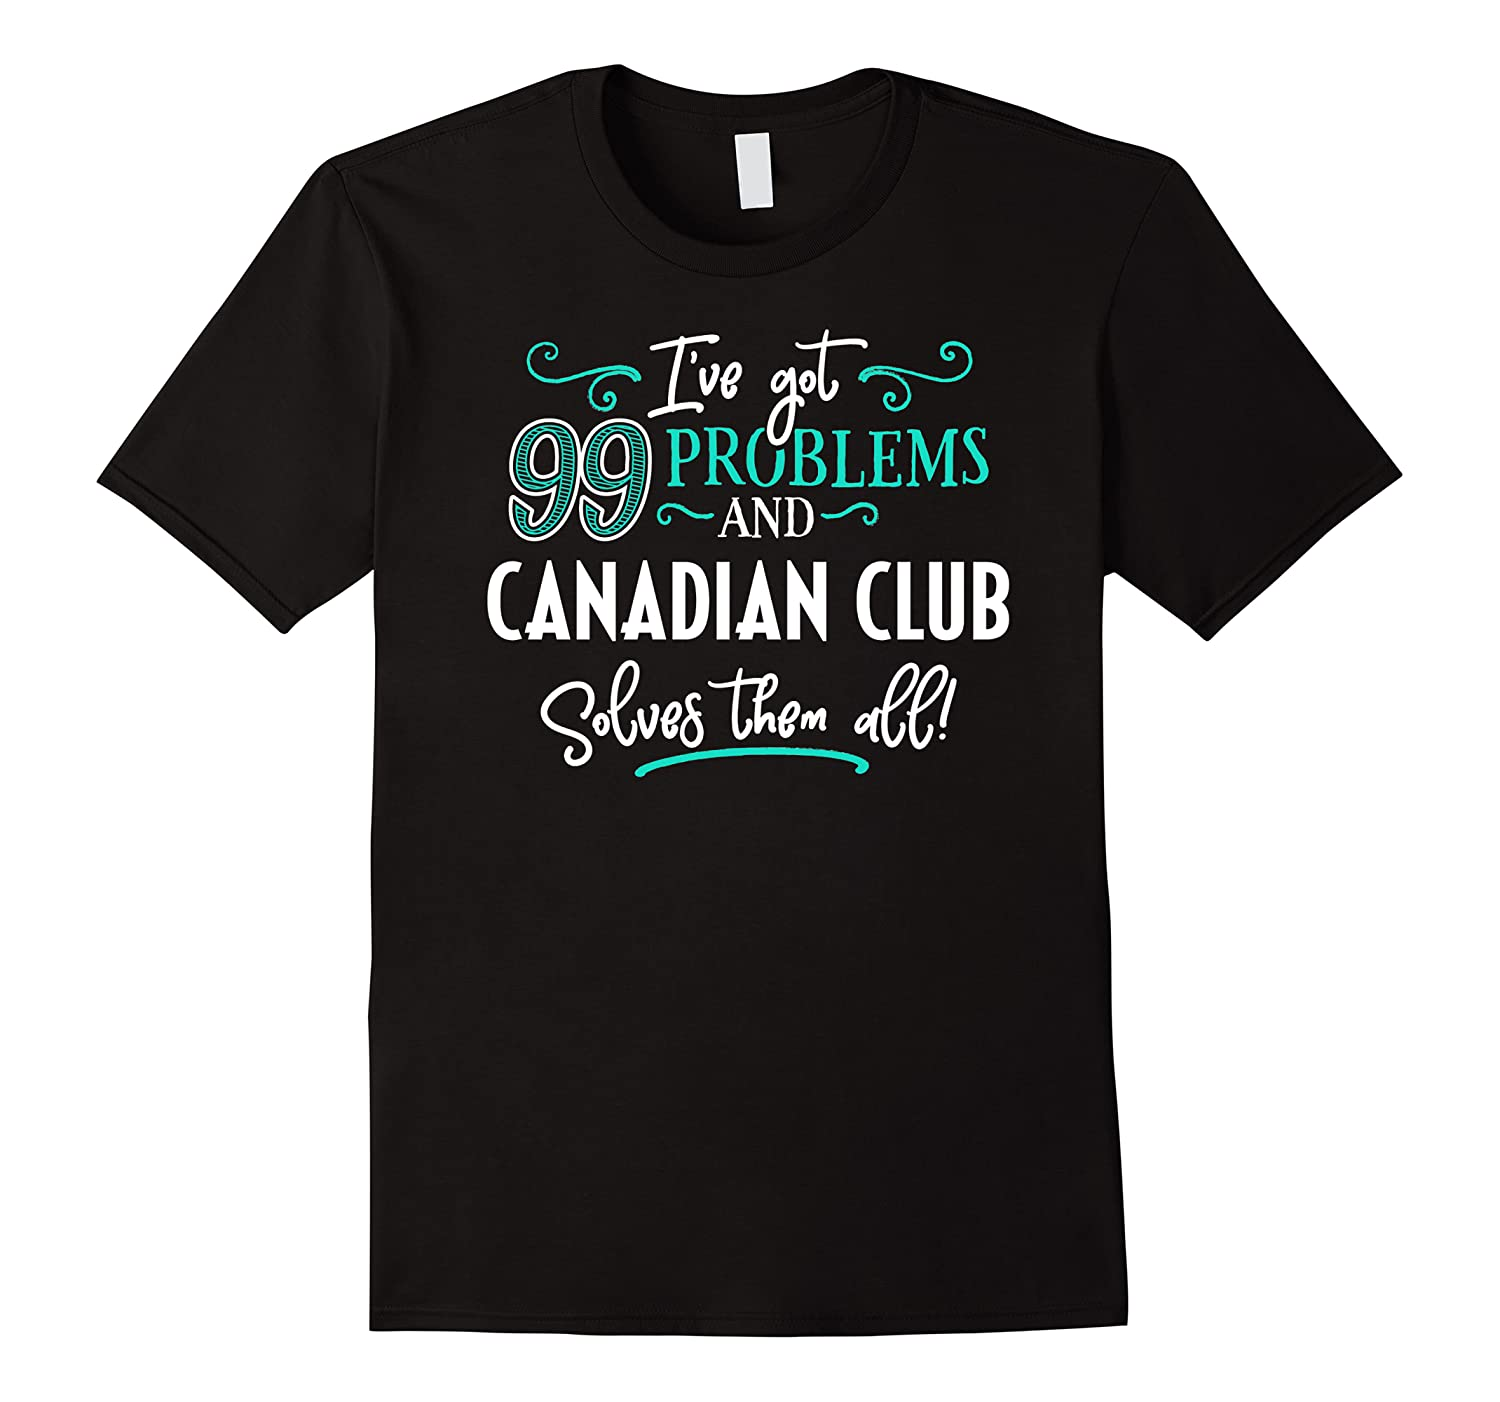 Canadian Club Shirt Gift - Canadian Club Solves Them All!